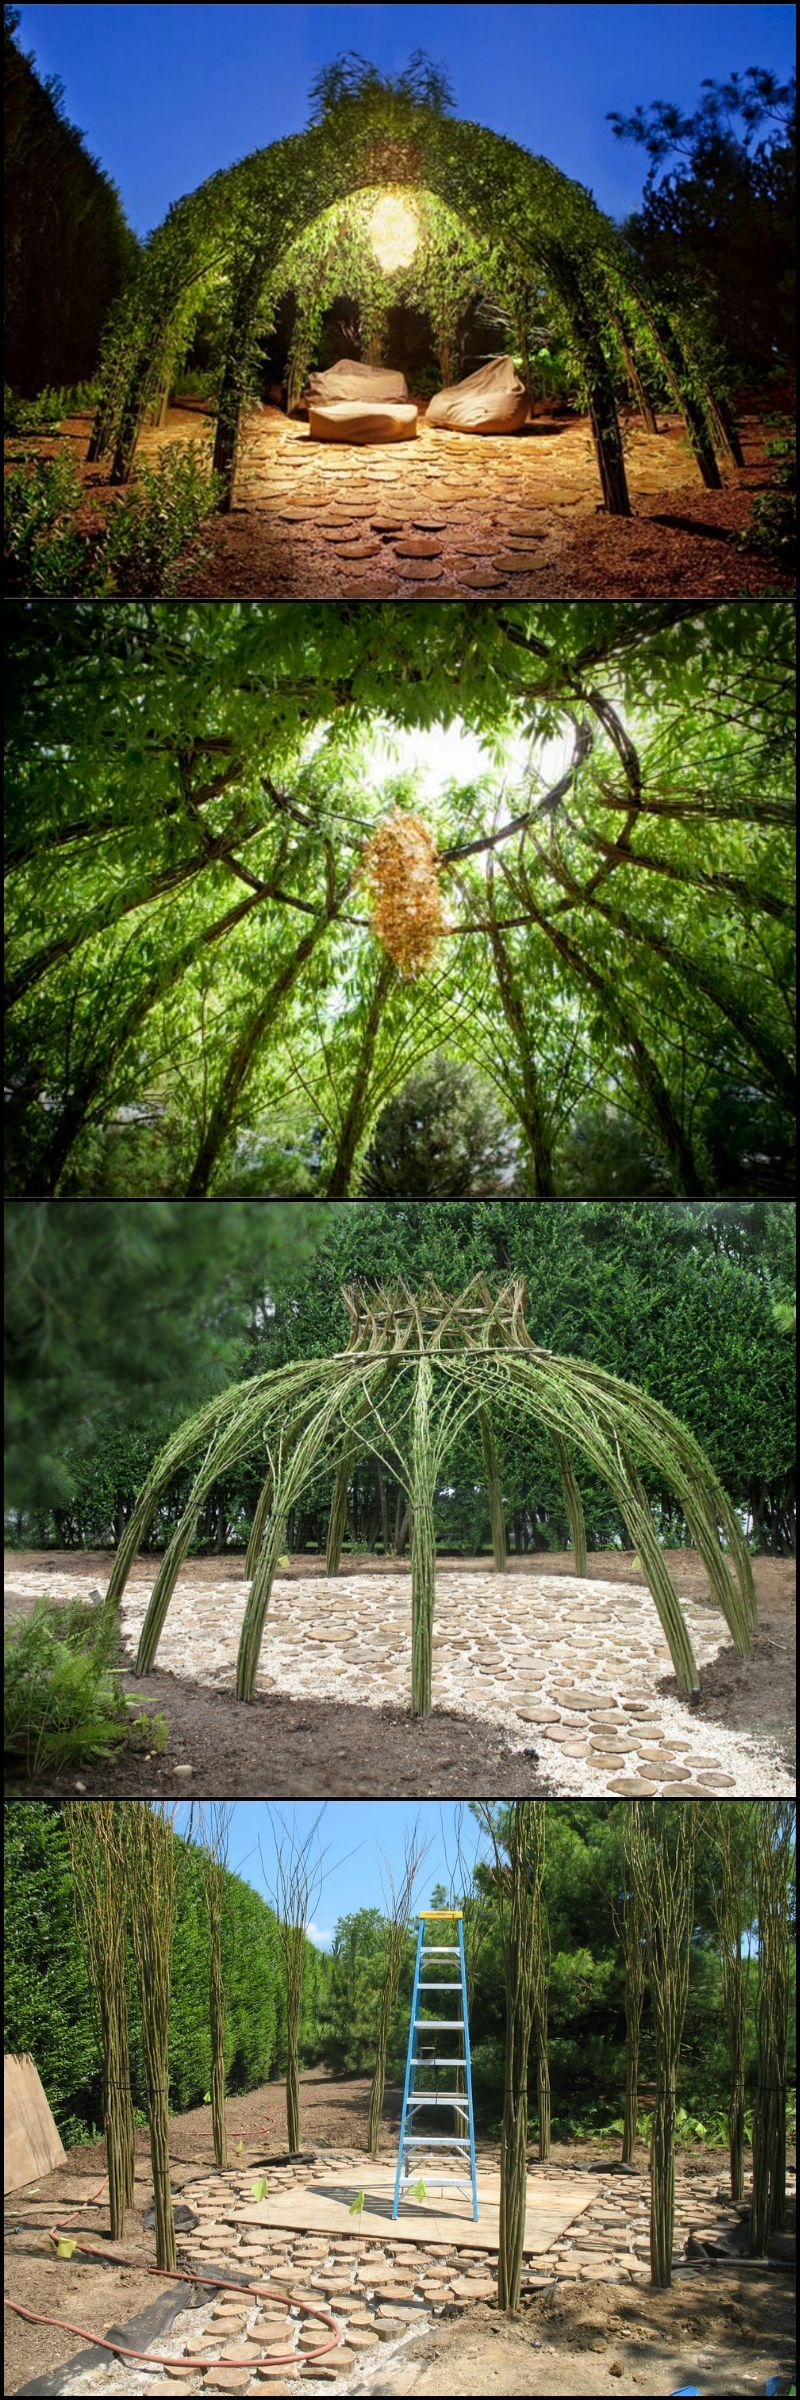 Wouldn't it be nice to have your own living willow structure in the garden? It's a great place to relax and watch nature going about her business.  We have more inspiring ideas for your garden on our site at http://theownerbuildernetwork.co/tjwi  Do you want one in your garden?